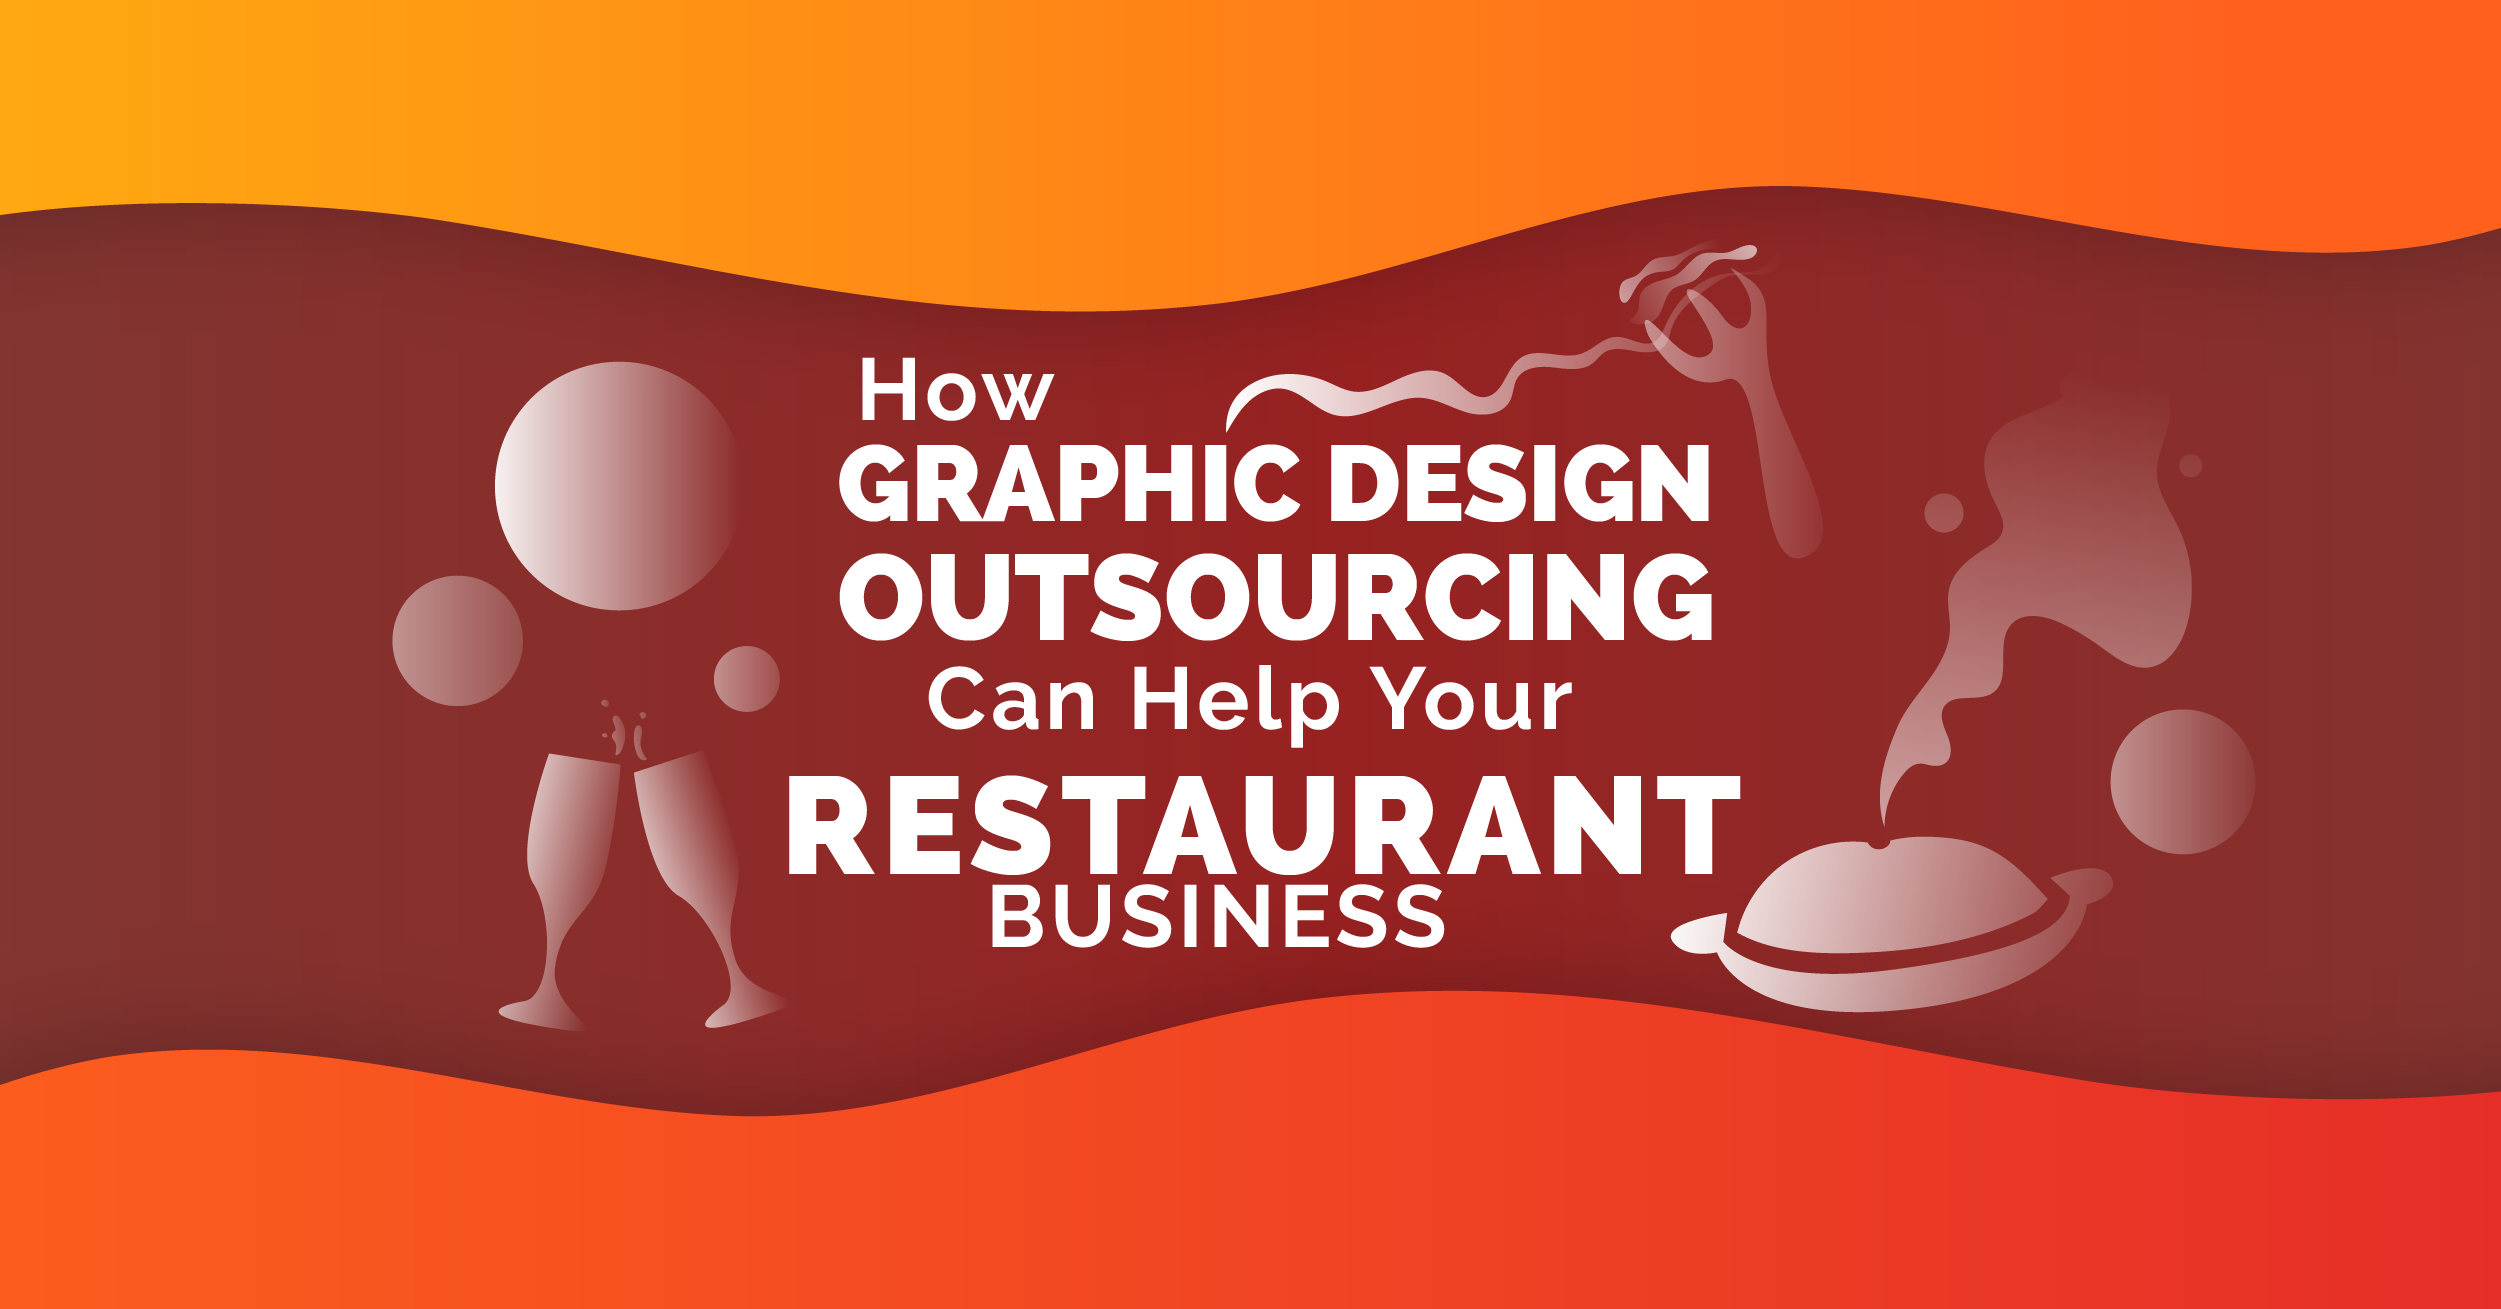 1605847858design-outsurcing-for-restaurant-business